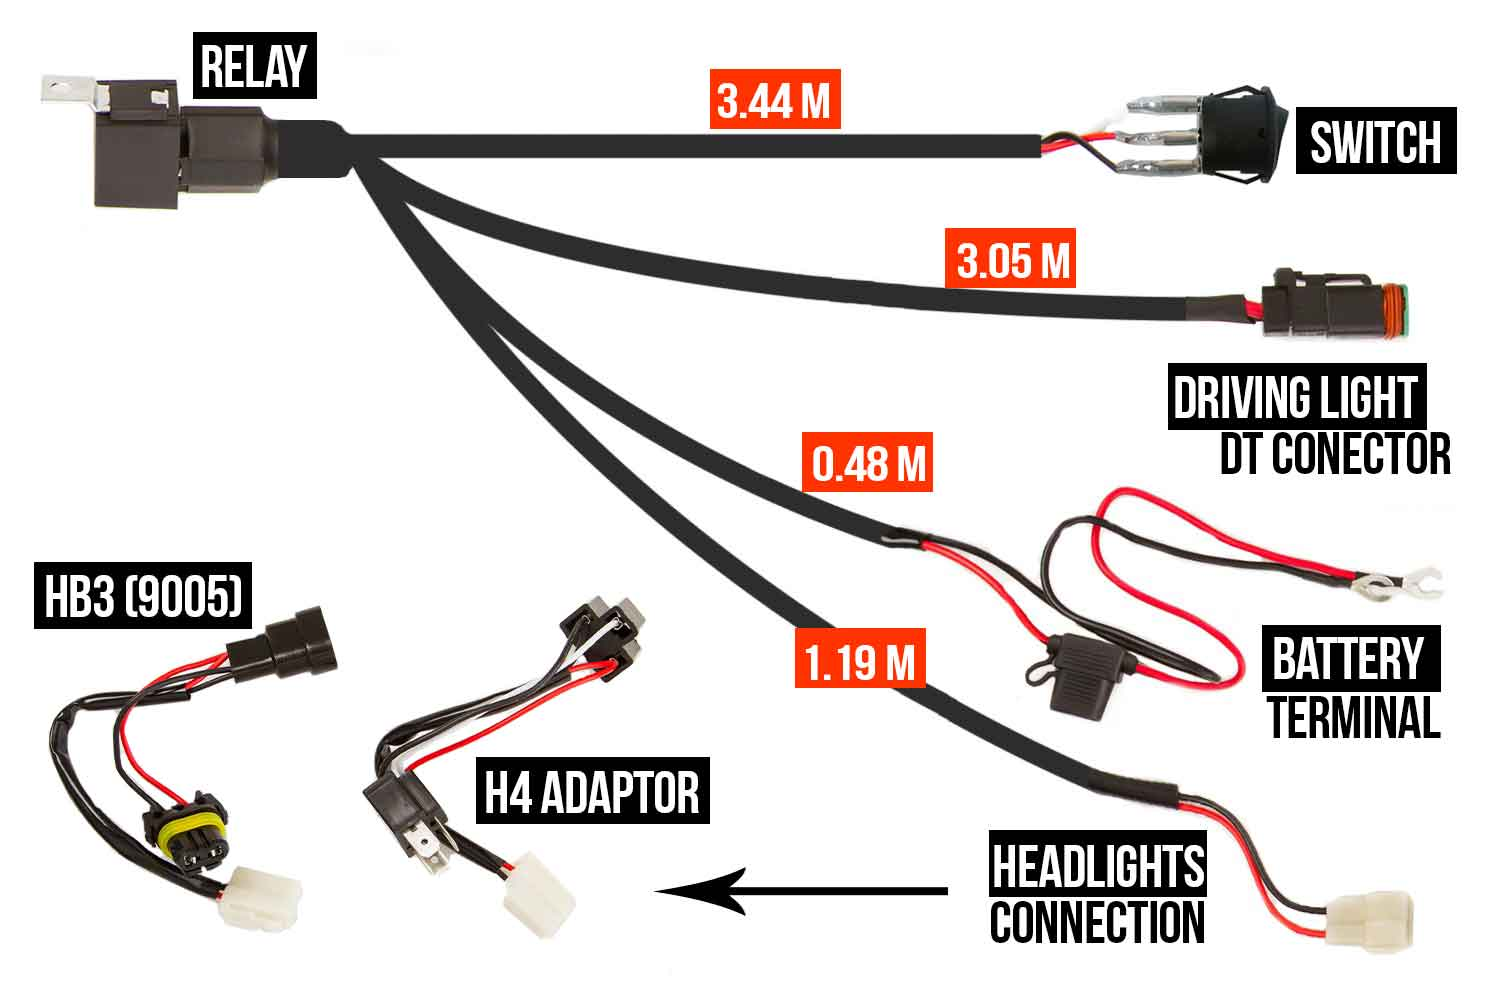 h4 hb3 wiring harness for led driving lights gemtek australia rh gemteklighting com au led driving light wiring harness motorcycle driving light wiring harness